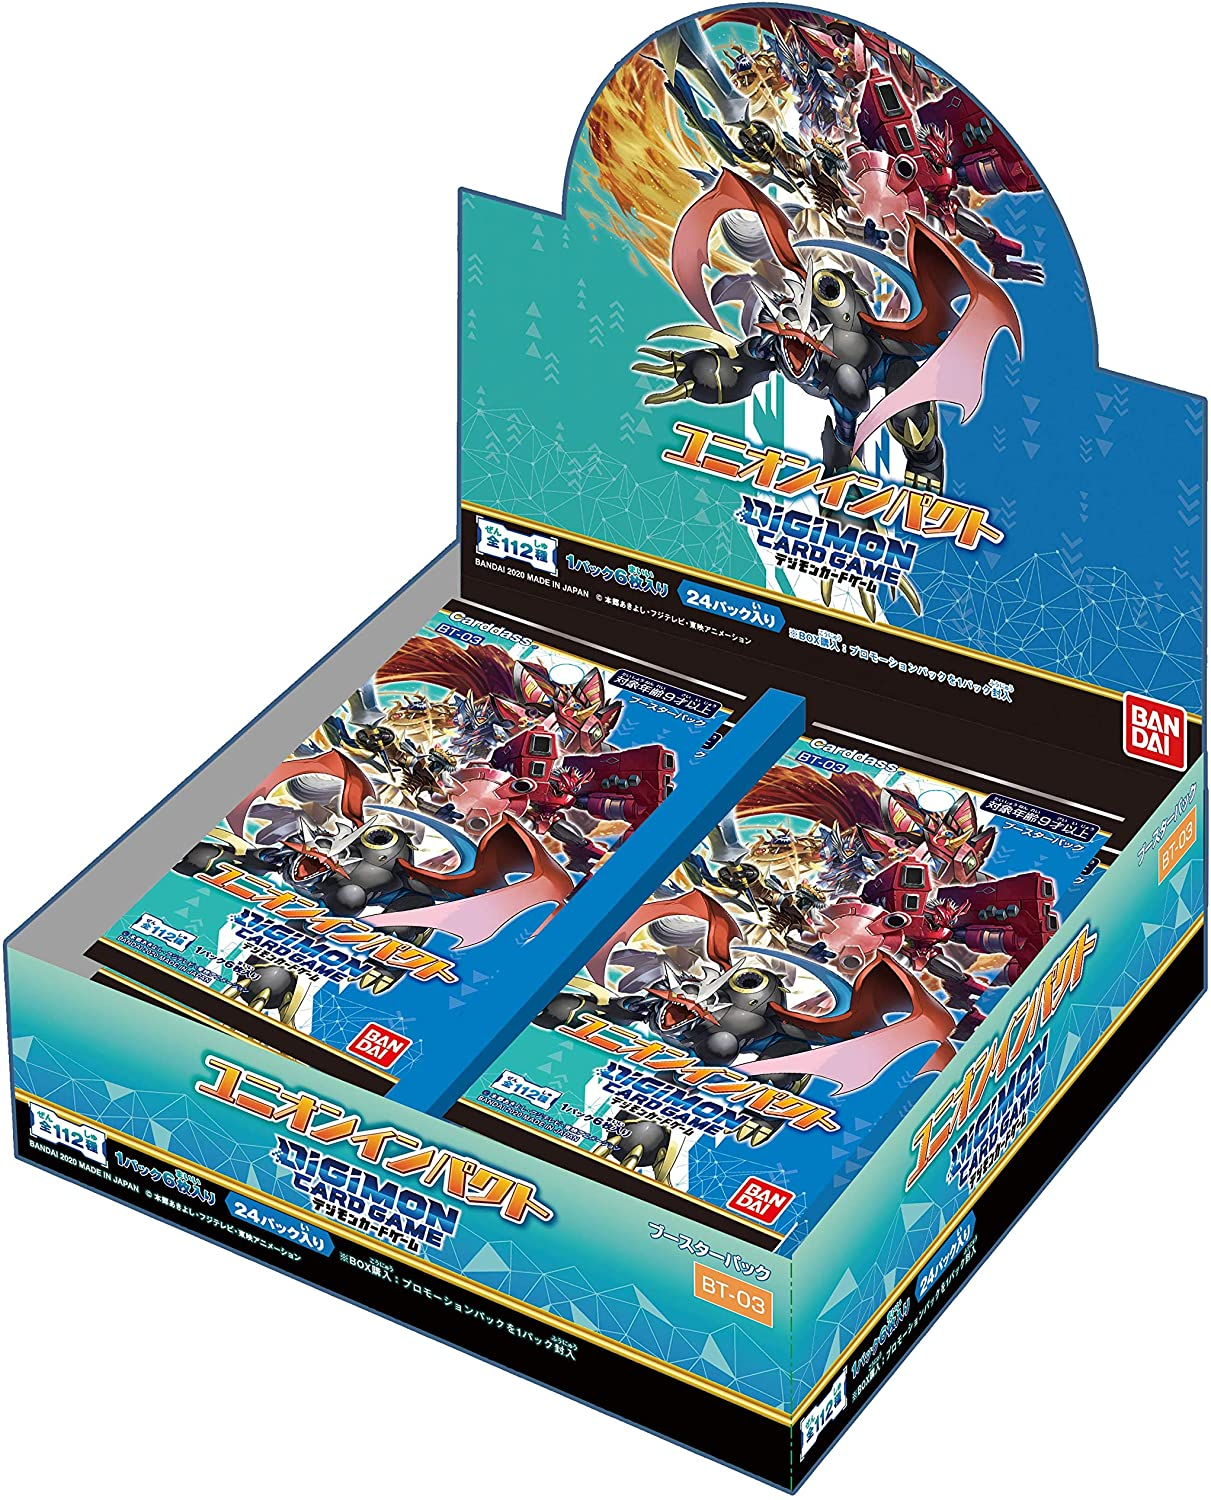 Digimon Card Game Booster Union Impact [BT-03] Box